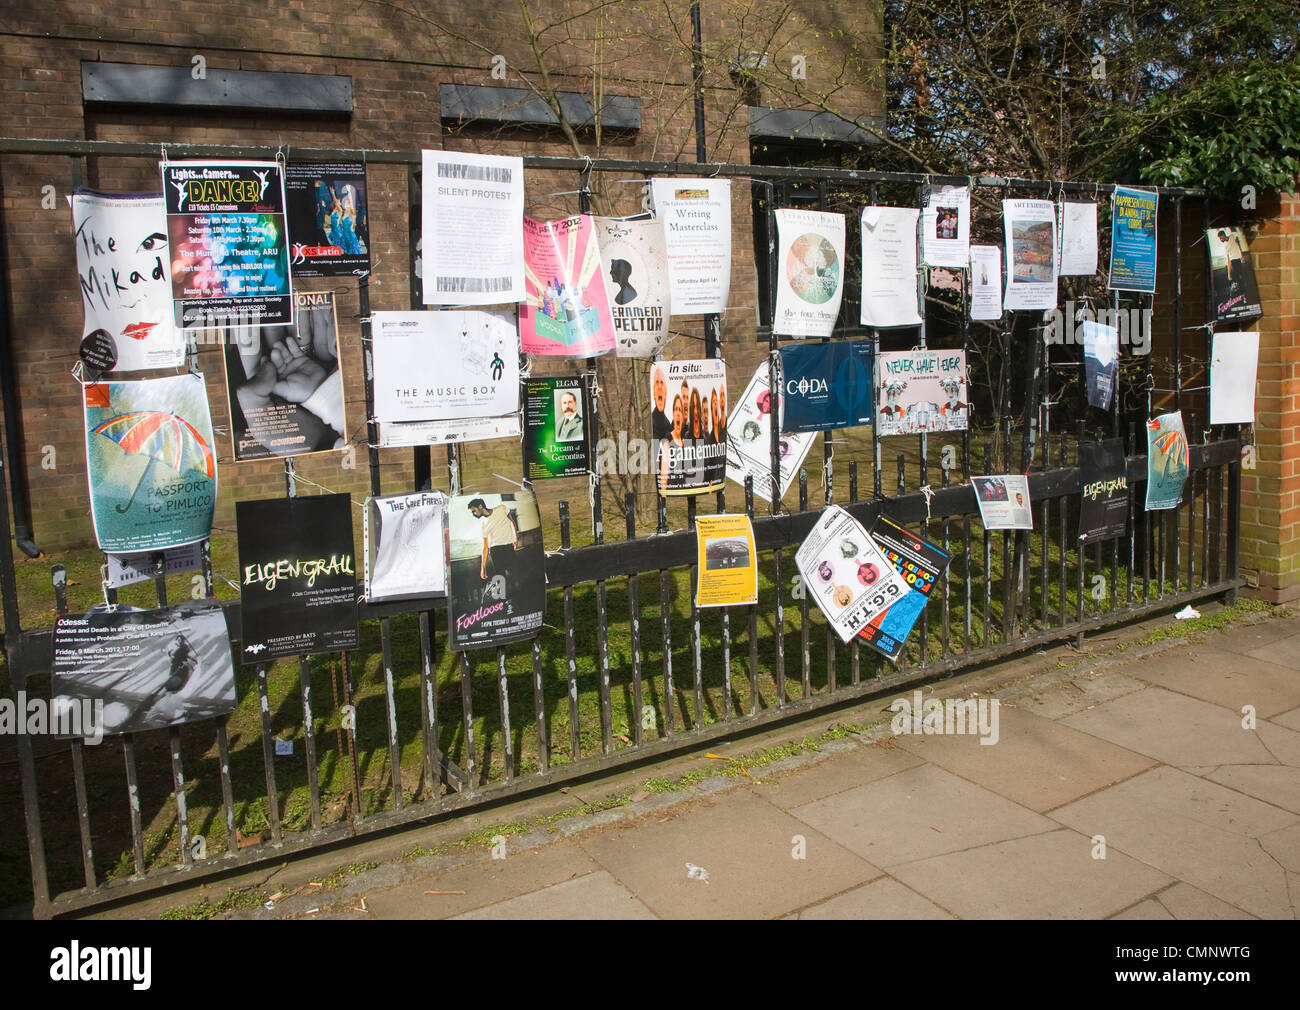 Student life posters for cultural events and activities, University of Cambridge, England - Stock Image